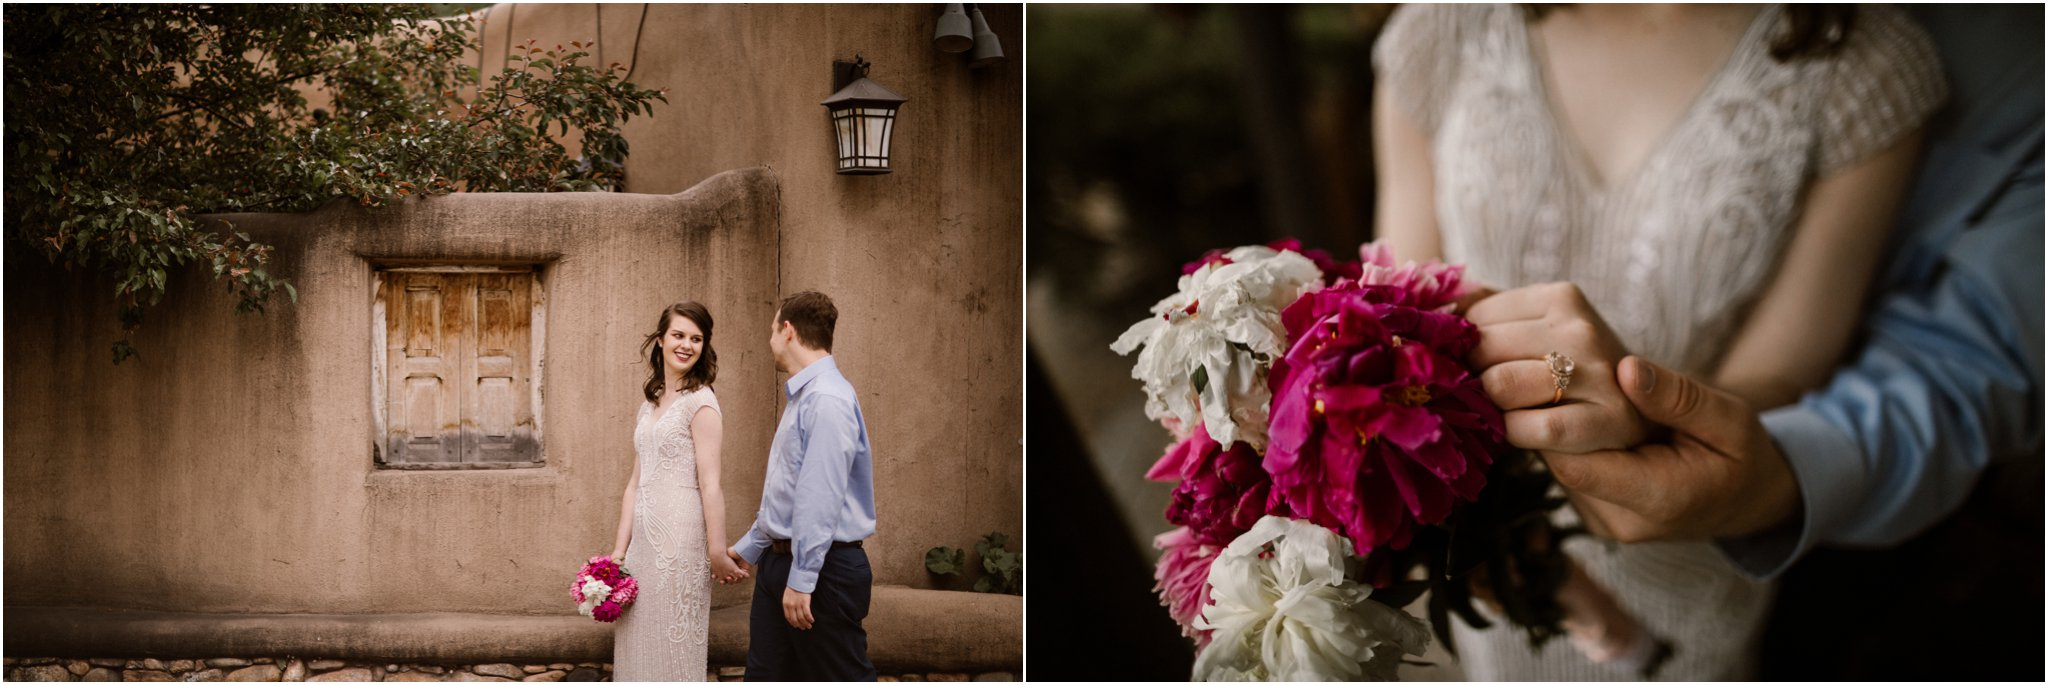 Santa Fe wedding elopement photographer